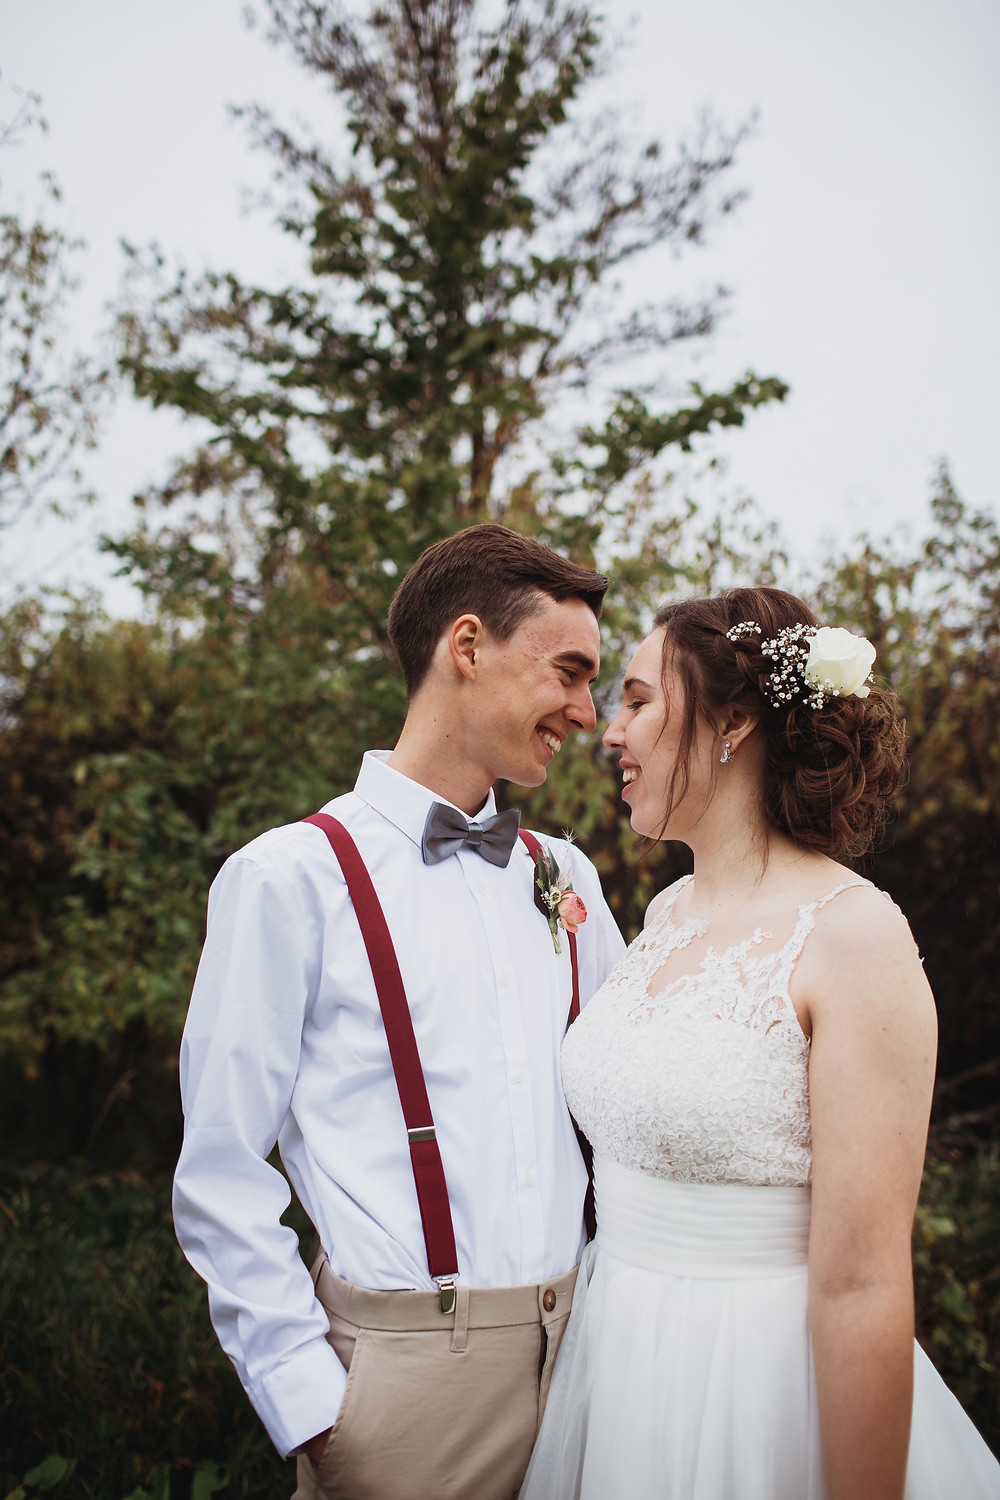 Fall bride and groom inspiration.